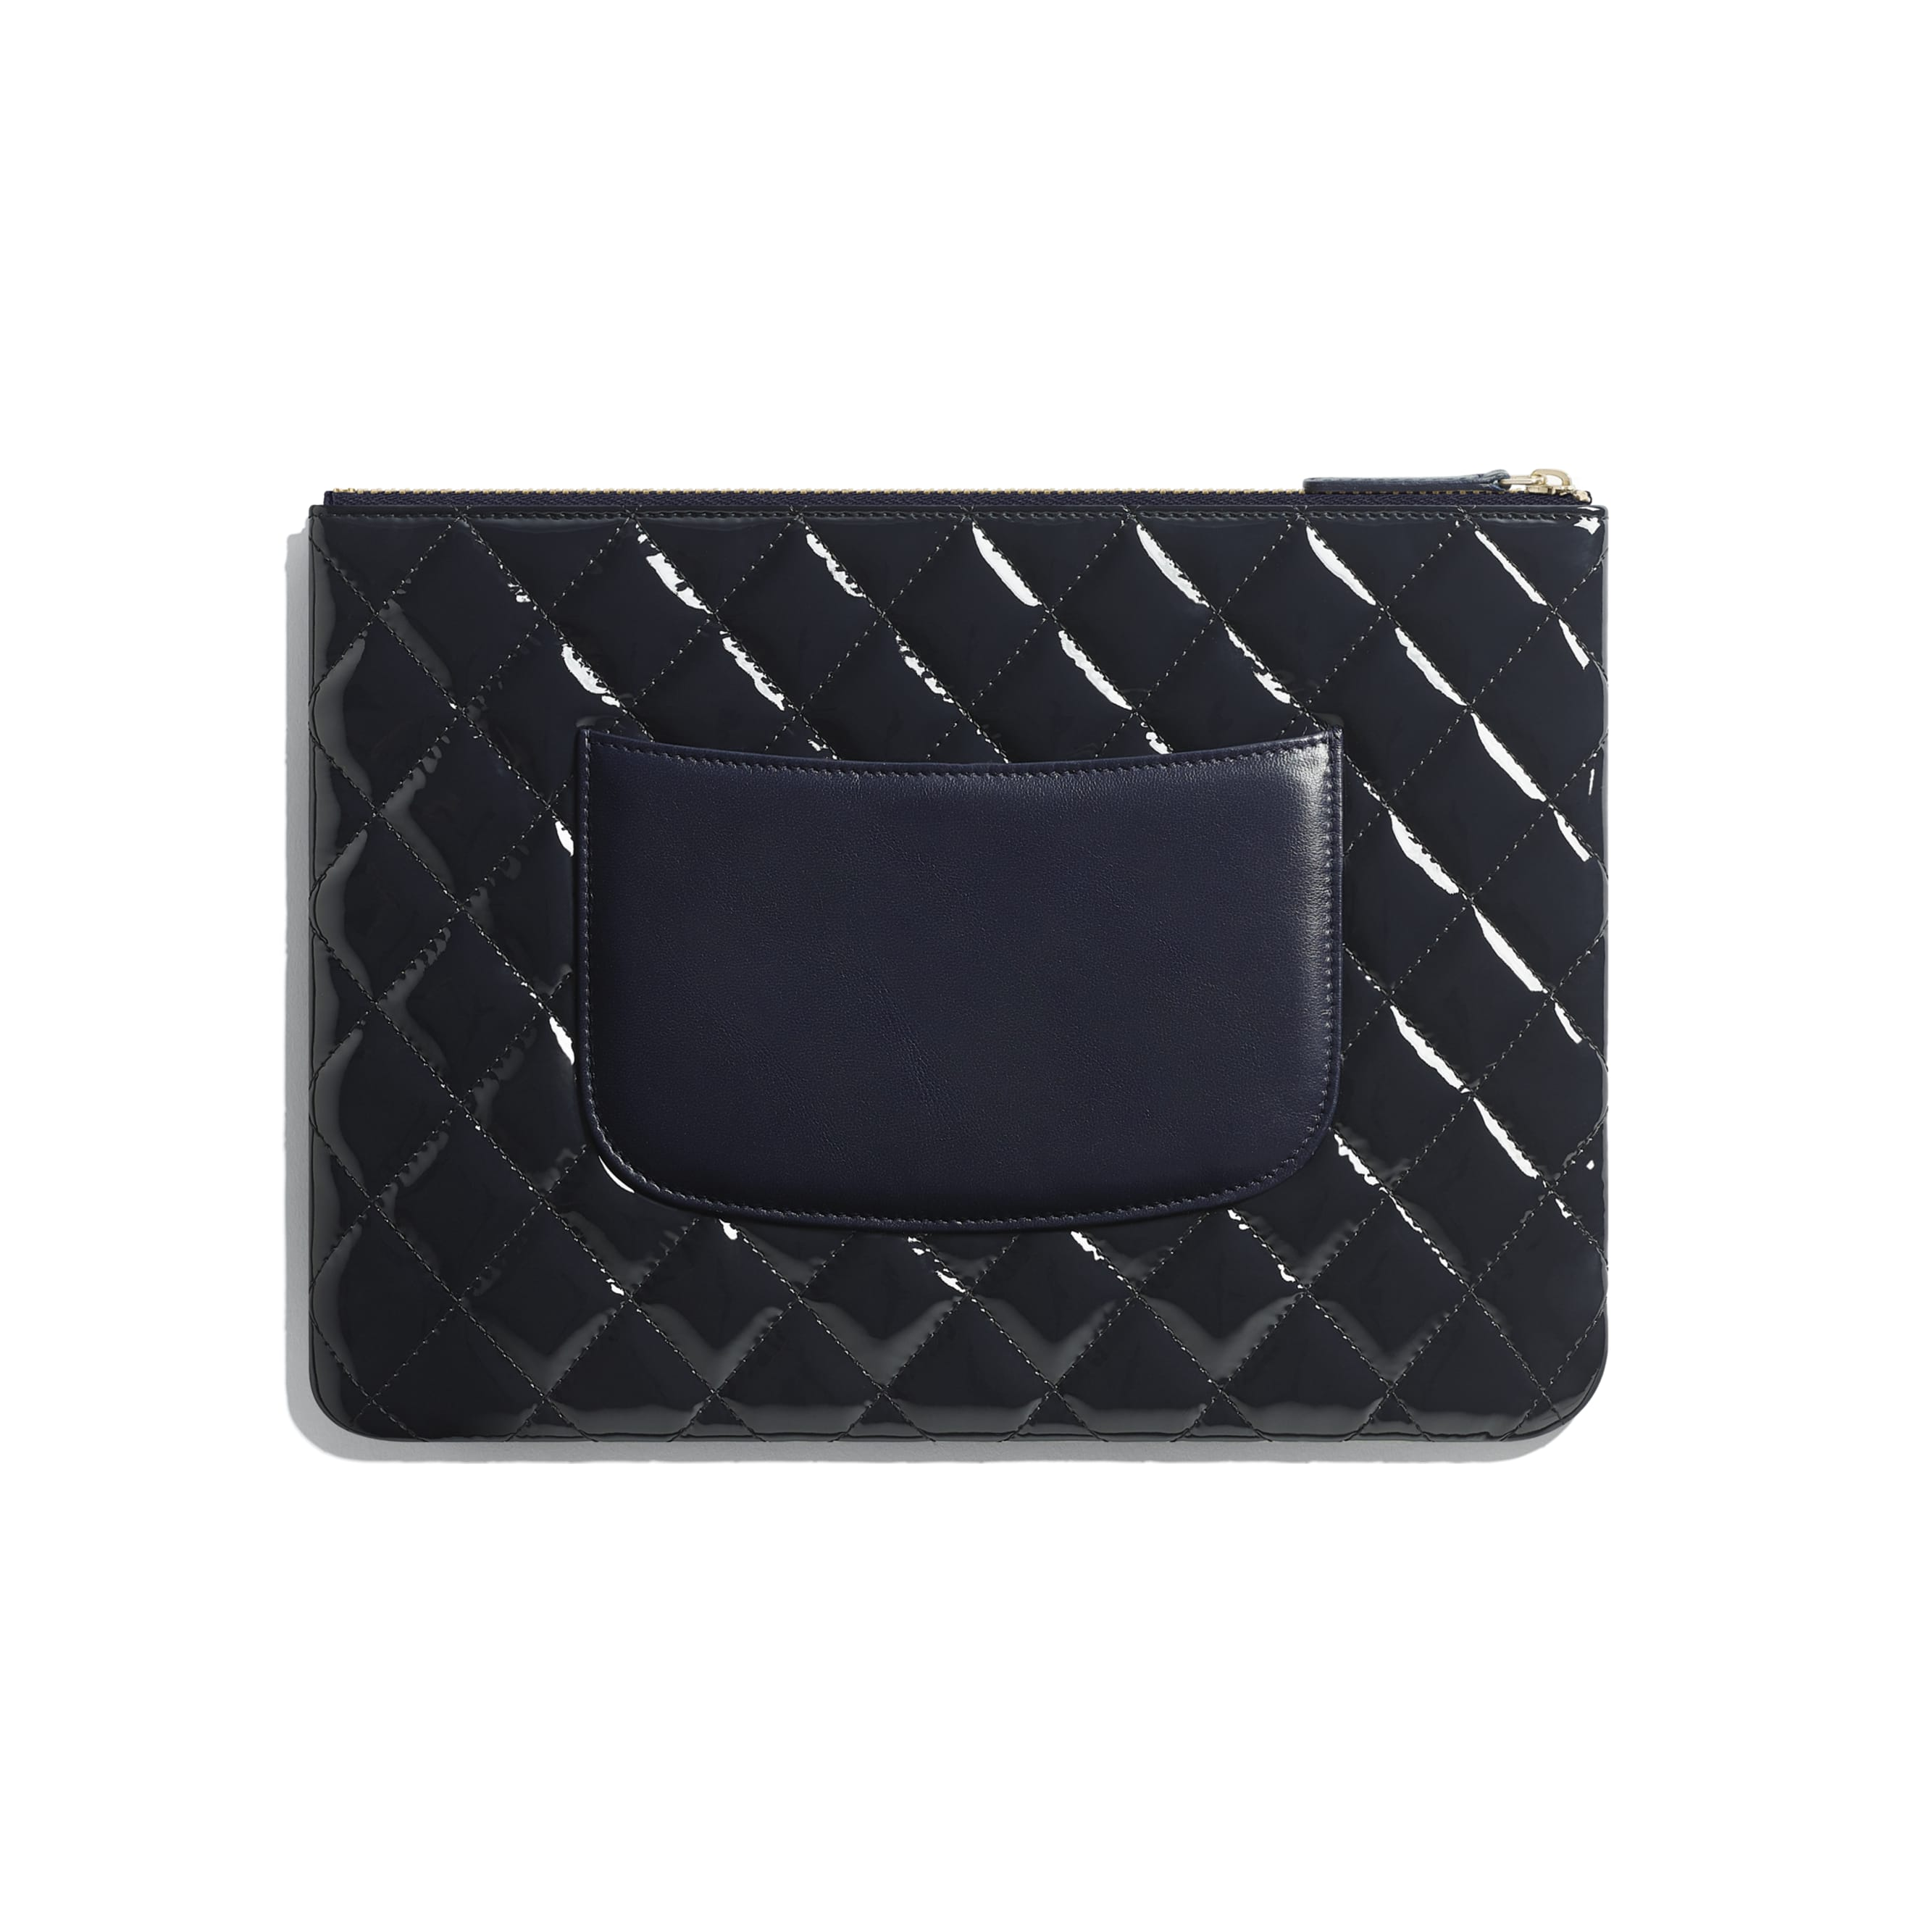 Pouch - Navy Blue - Patent Calfskin, Lambskin & Gold-Tone Metal - CHANEL - Alternative view - see standard sized version